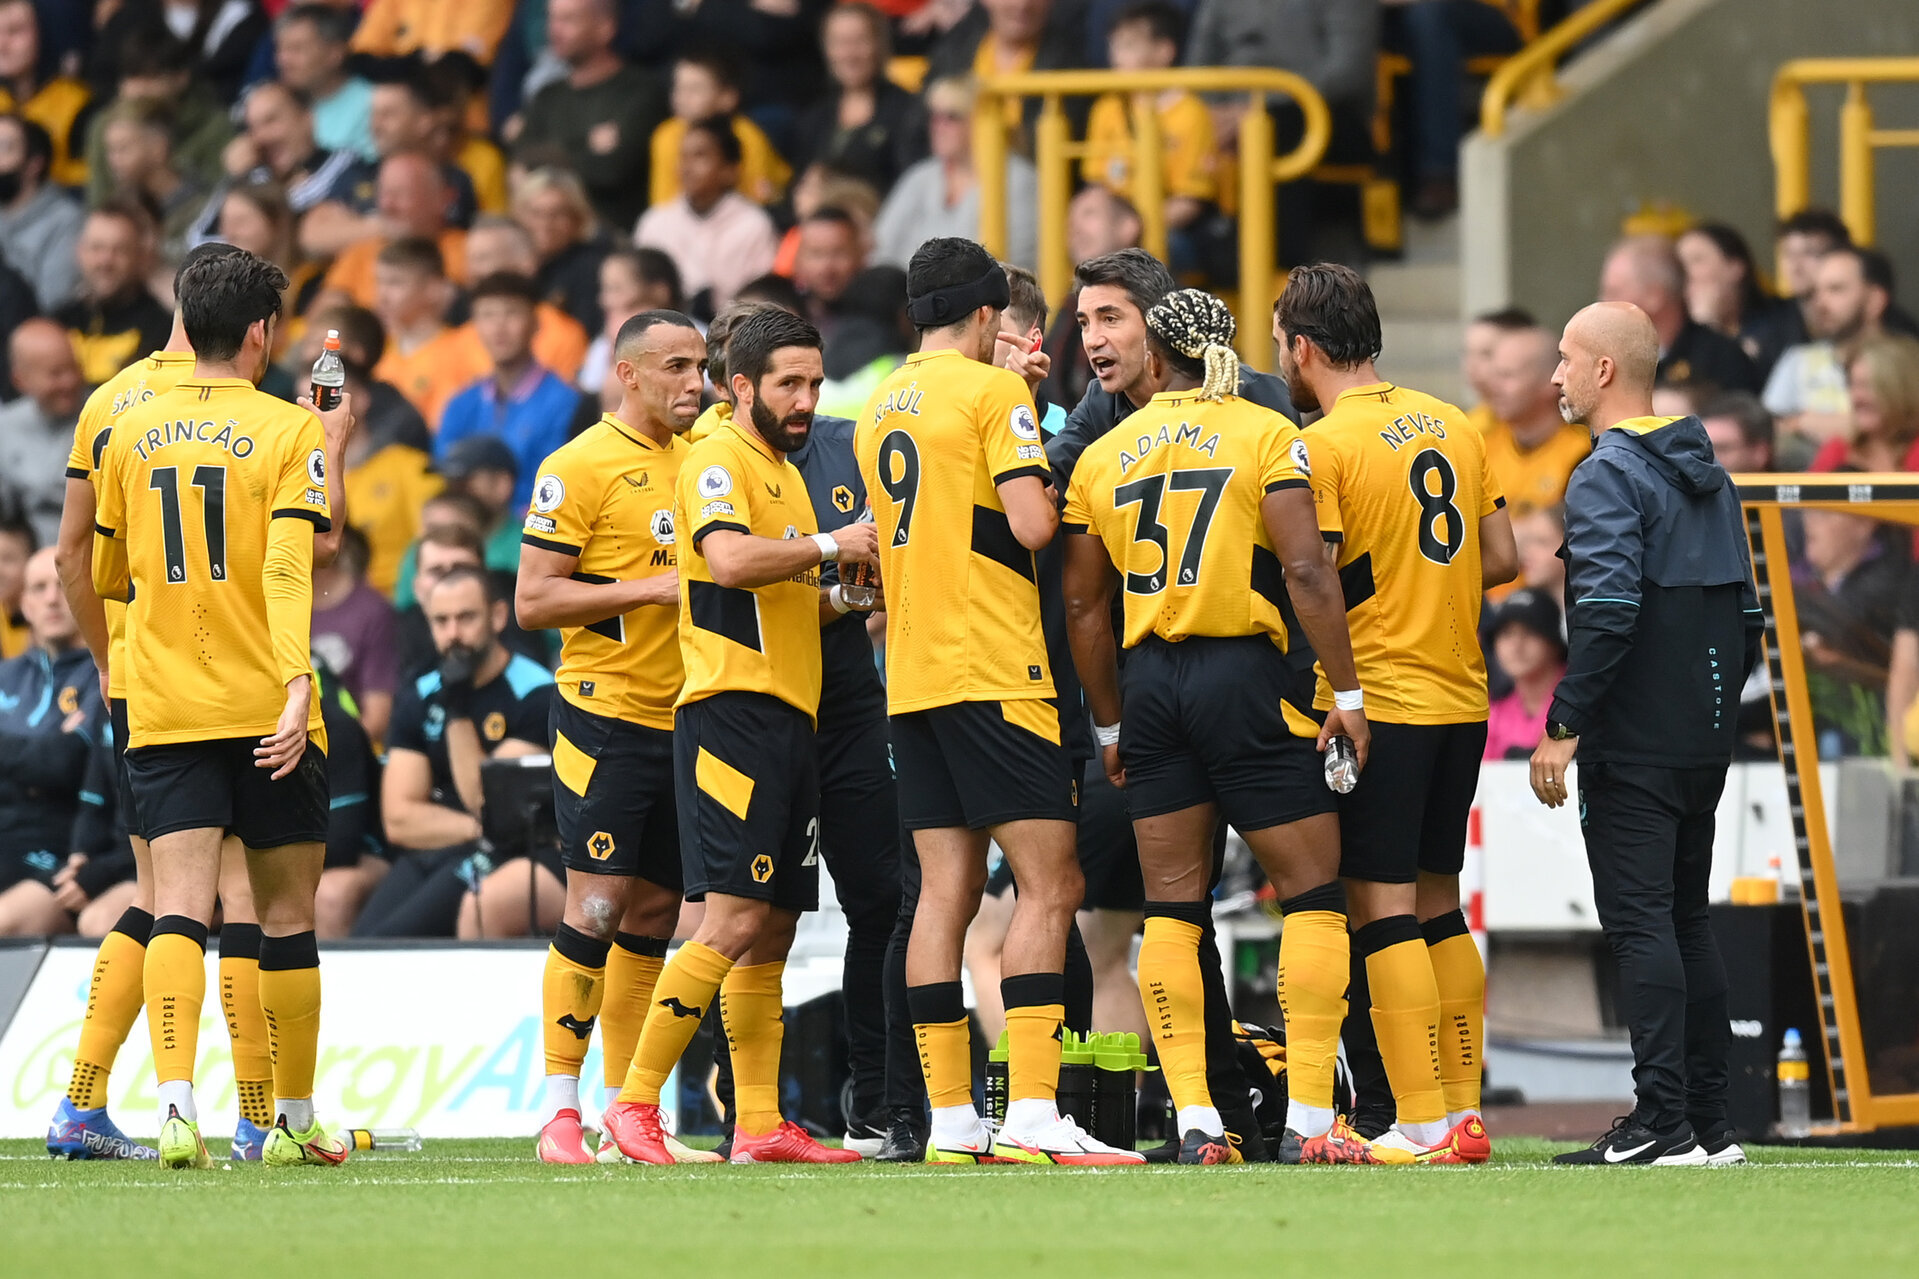 WOLVERHAMPTON, ENGLAND - AUGUST 29: Bruno Lage, Manager of Wolverhampton Wanderers gives instructions to their side  during the Premier League match between Wolverhampton Wanderers  and  Manchester United at Molineux on August 29, 2021 in Wolverhampton, England. (Photo by Michael Regan/Getty Images)